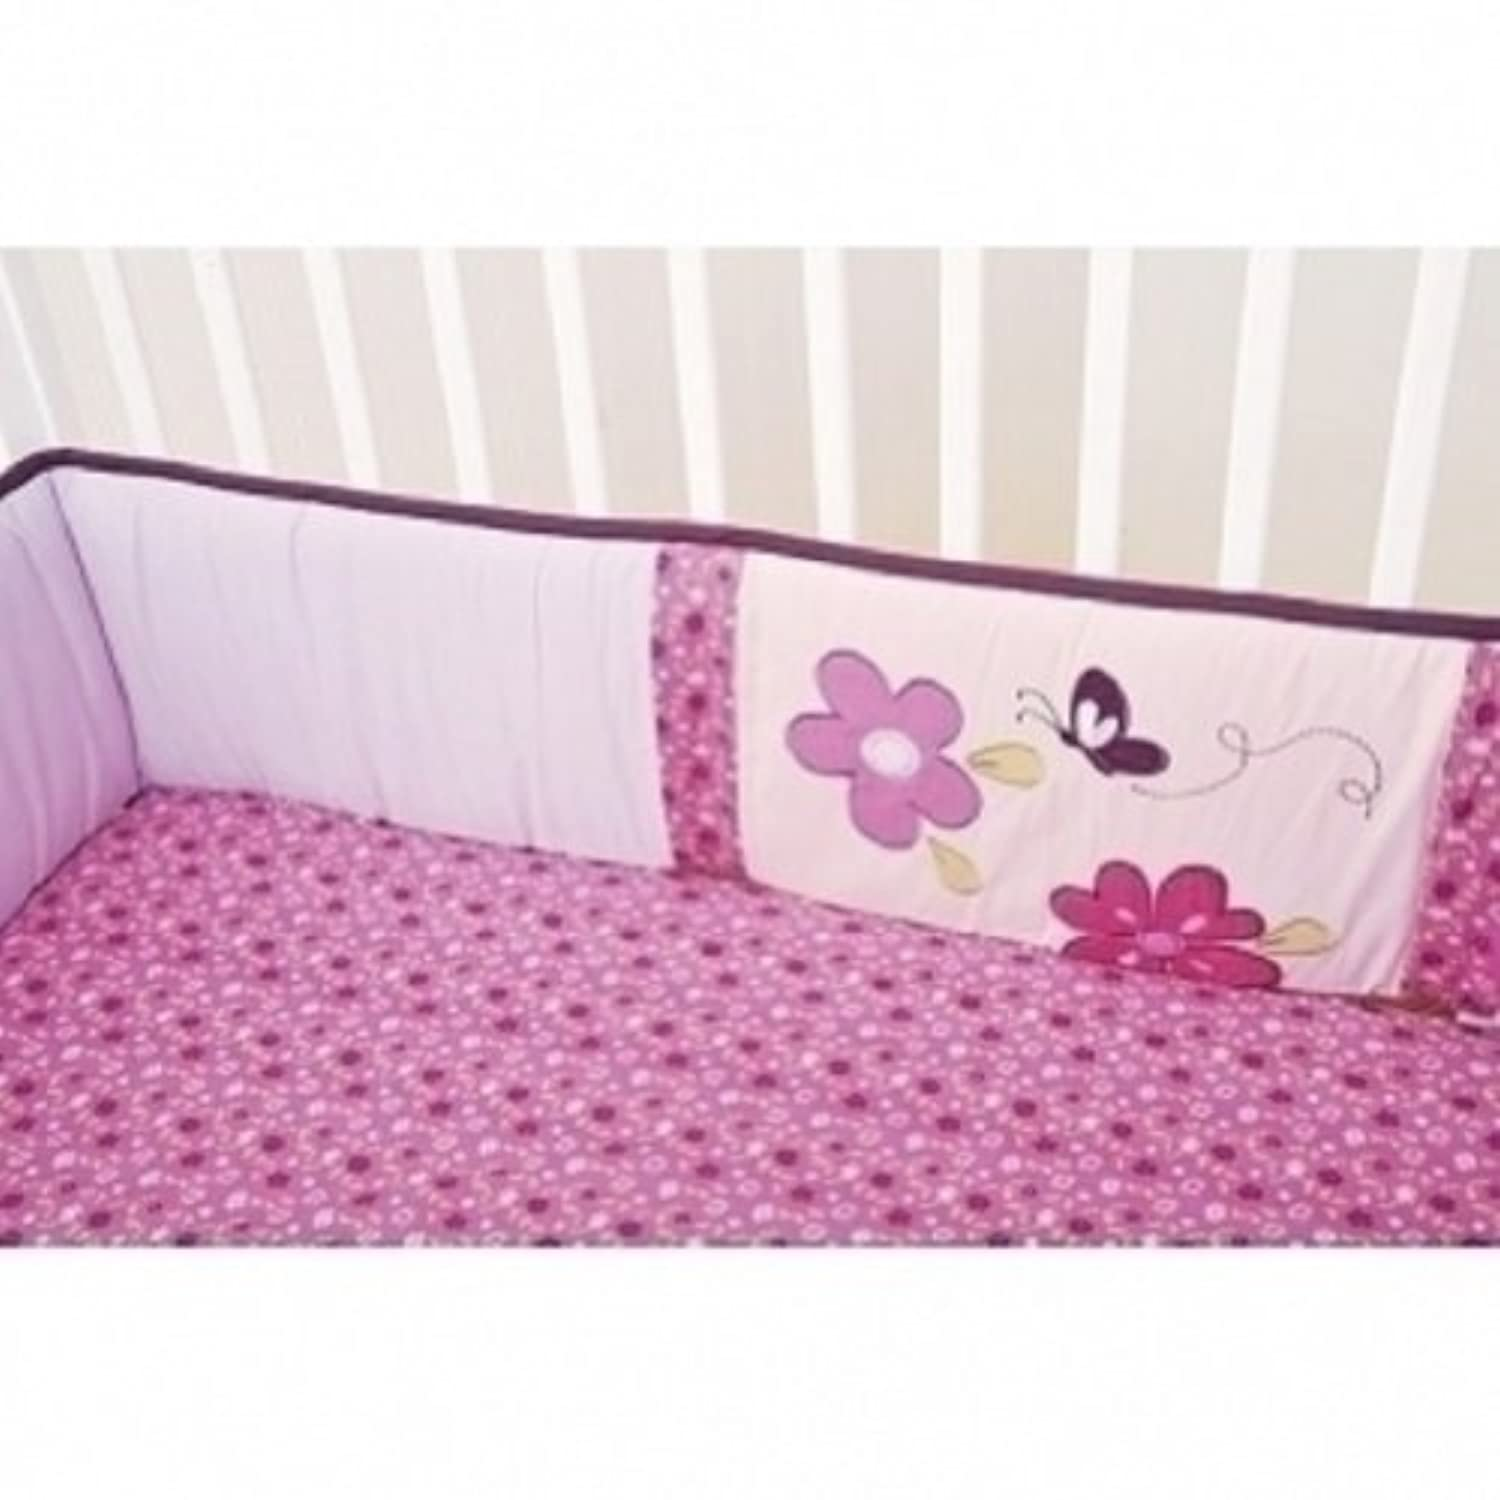 Lil' Kids Plum Blossoms Fitted Crib Sheet - Set of 2 (Pink/Purple) by KidsLine